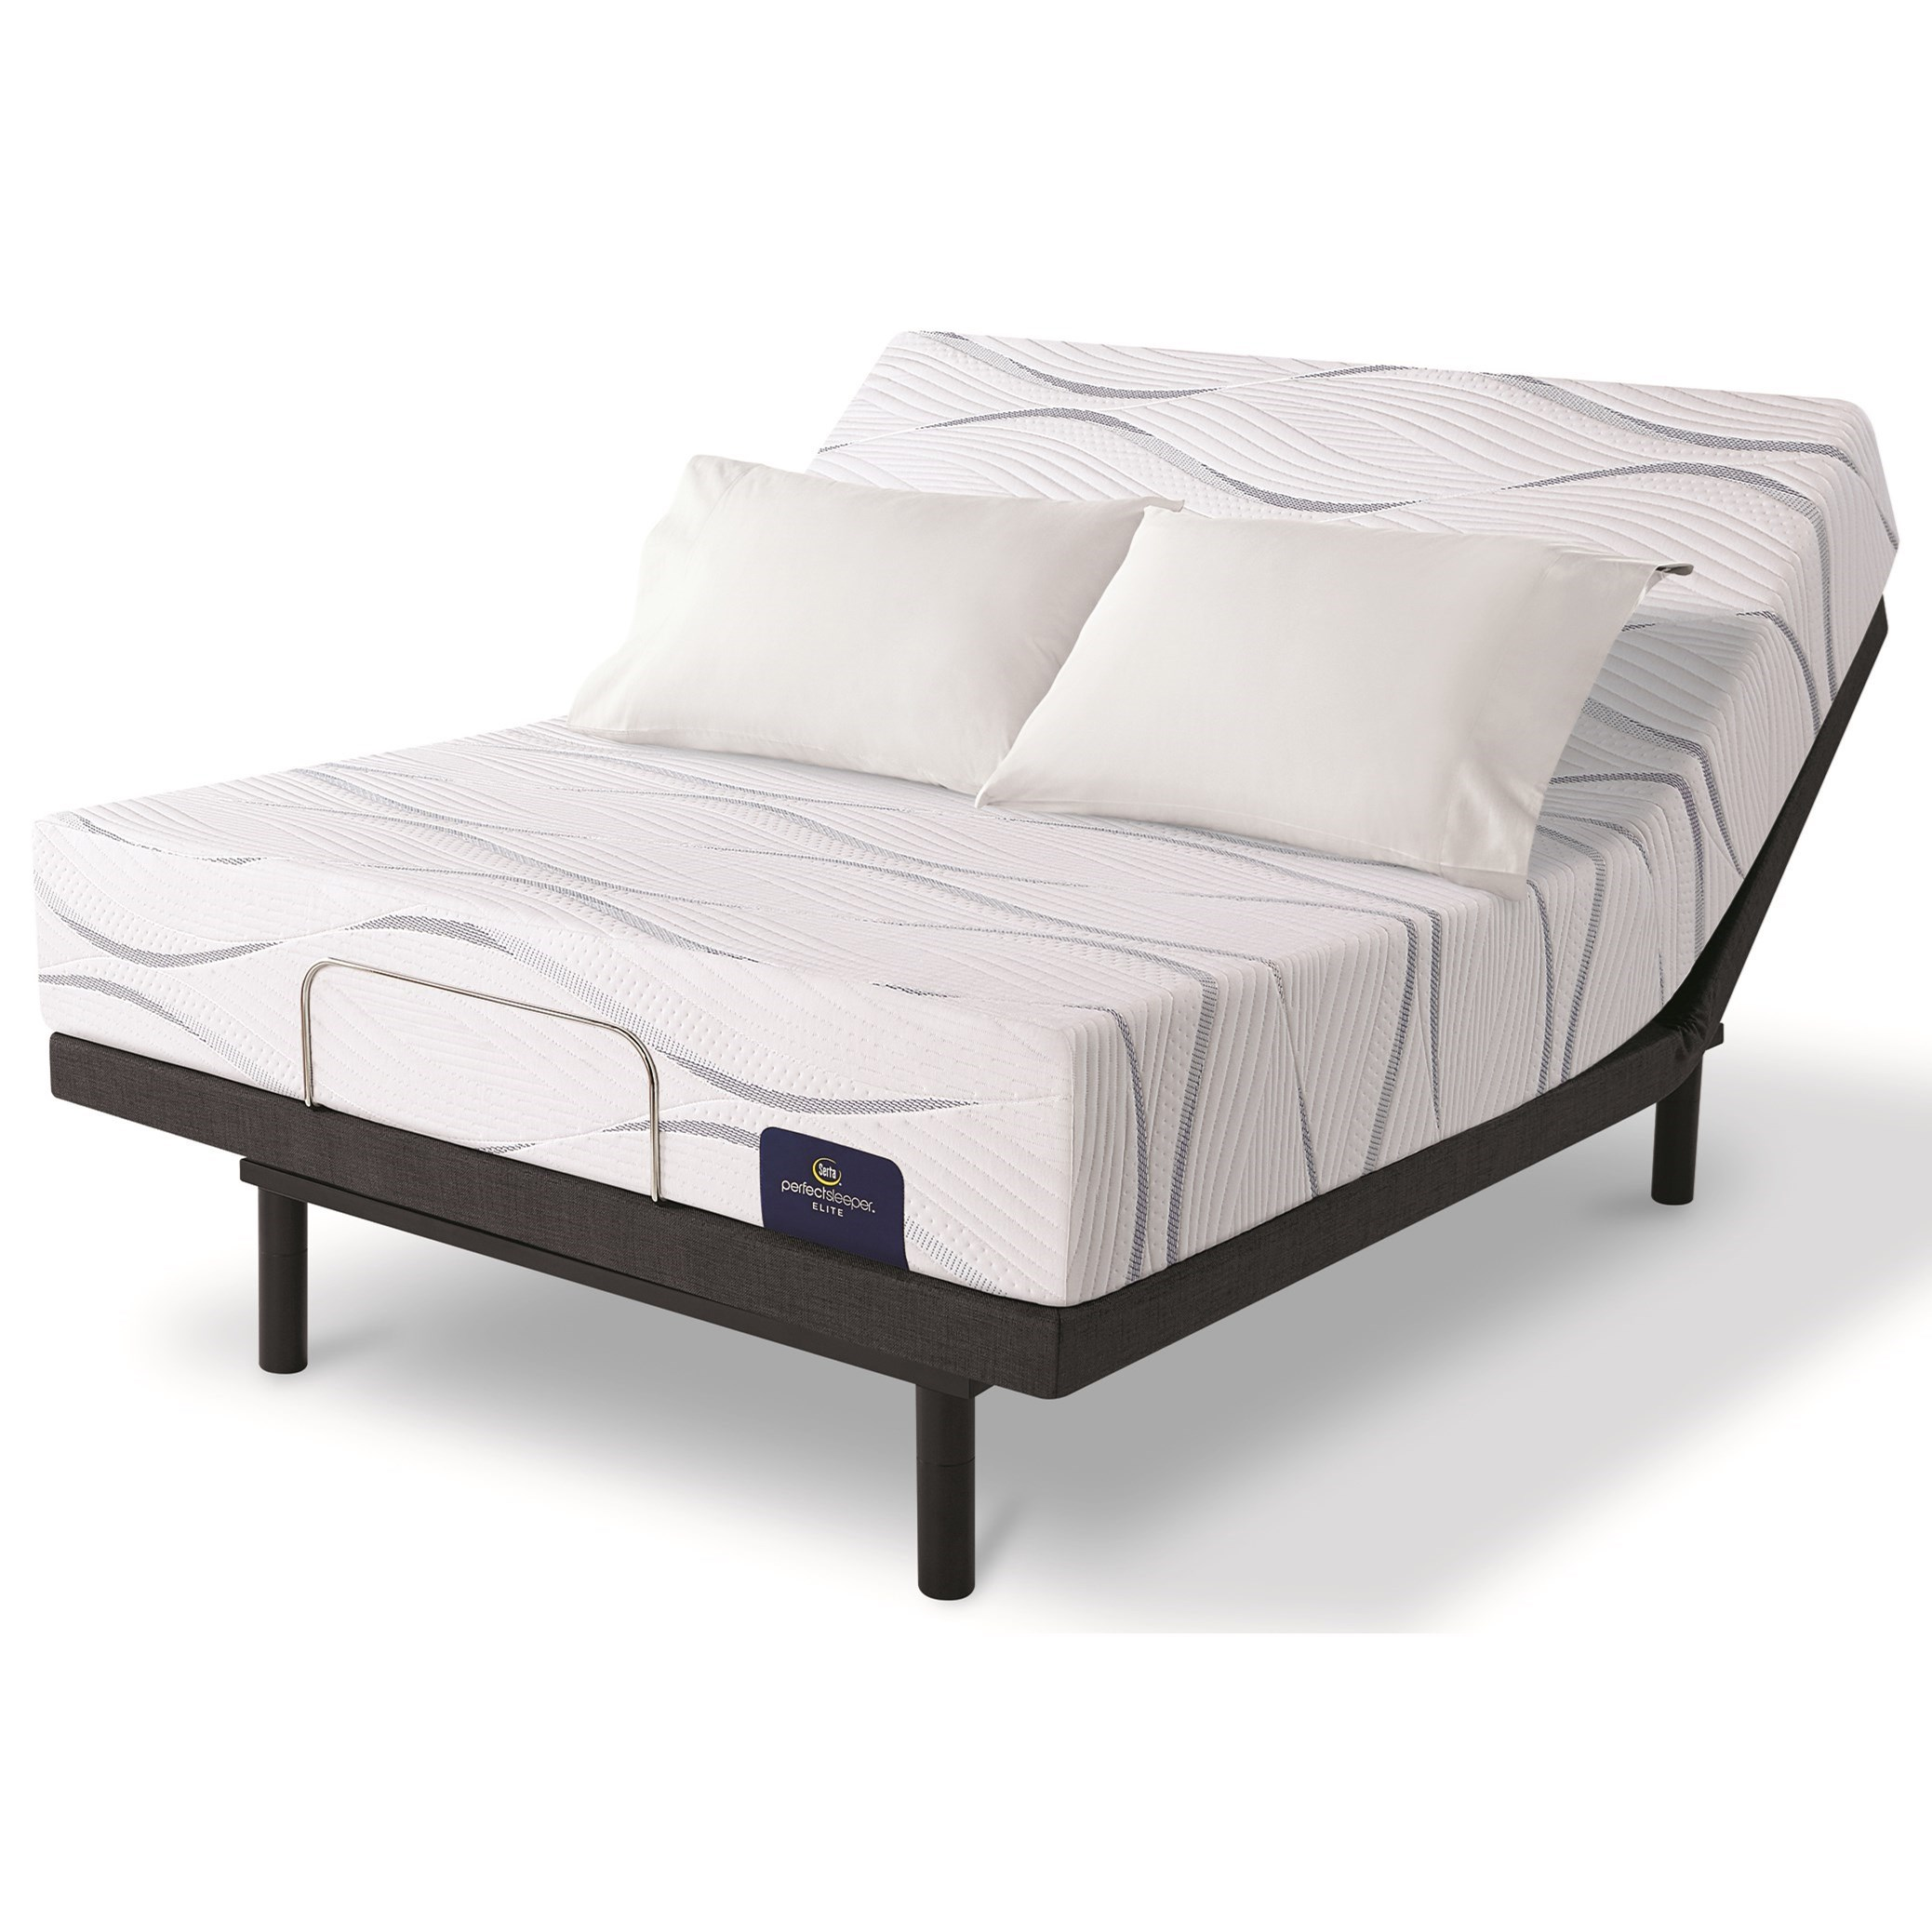 Merriam II Firm Full Gel Memory Foam Adj Mattress Set by Serta at SlumberWorld